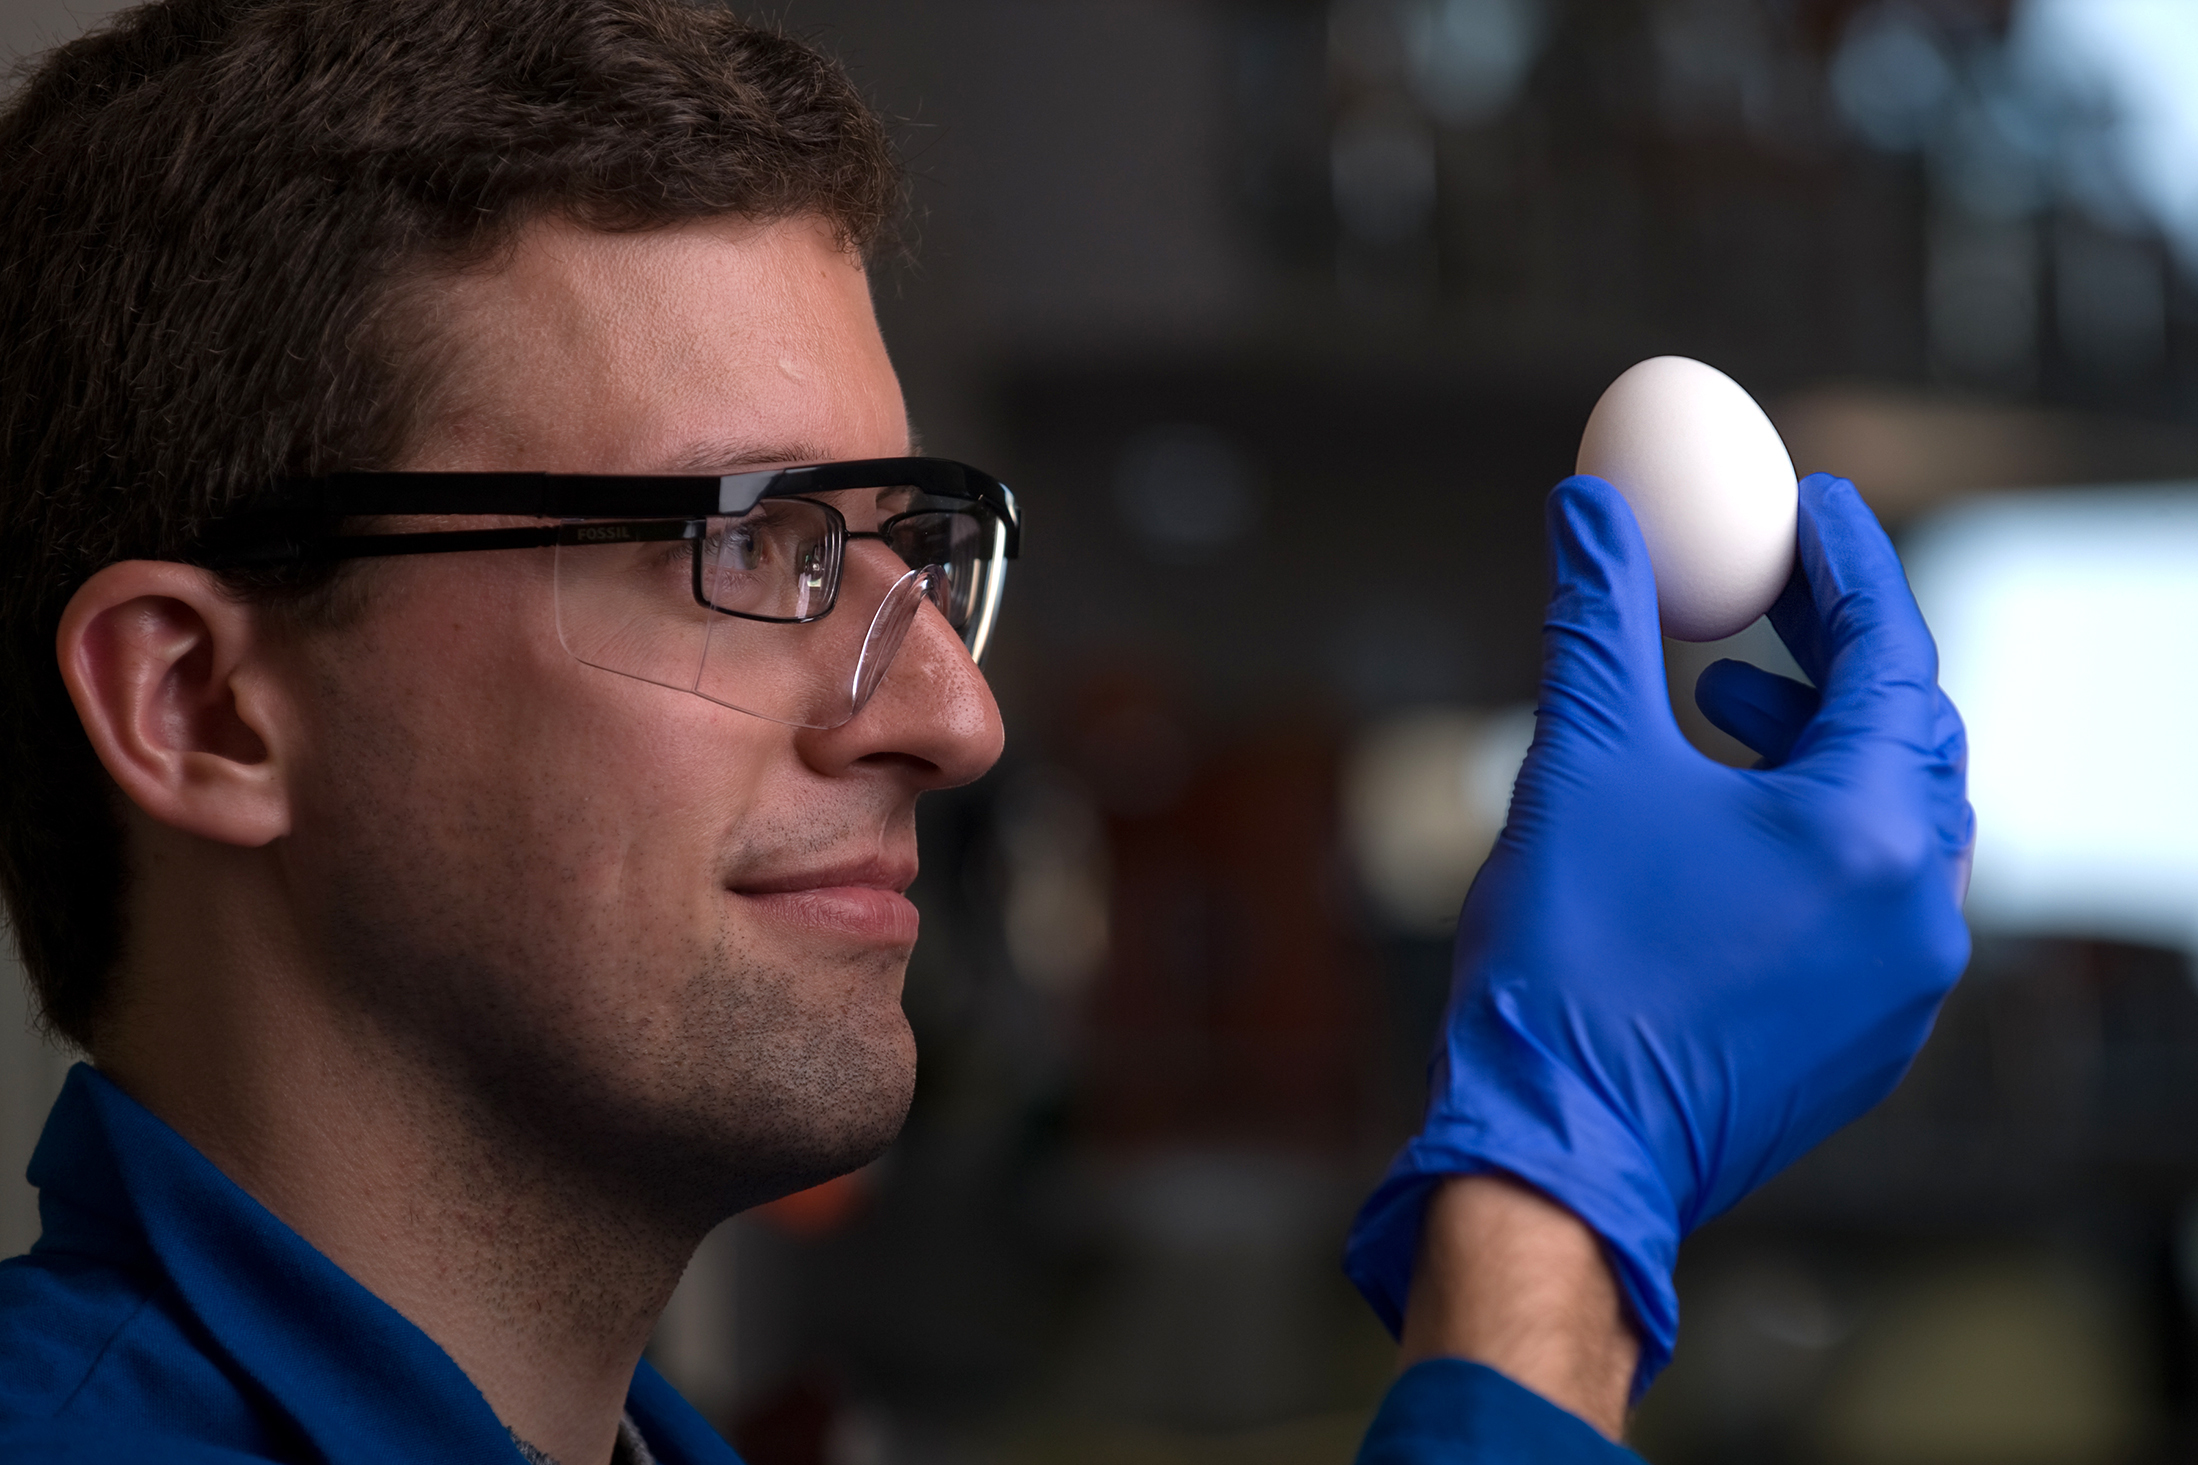 How Unboiled Eggs Could Help Fight Food Waste